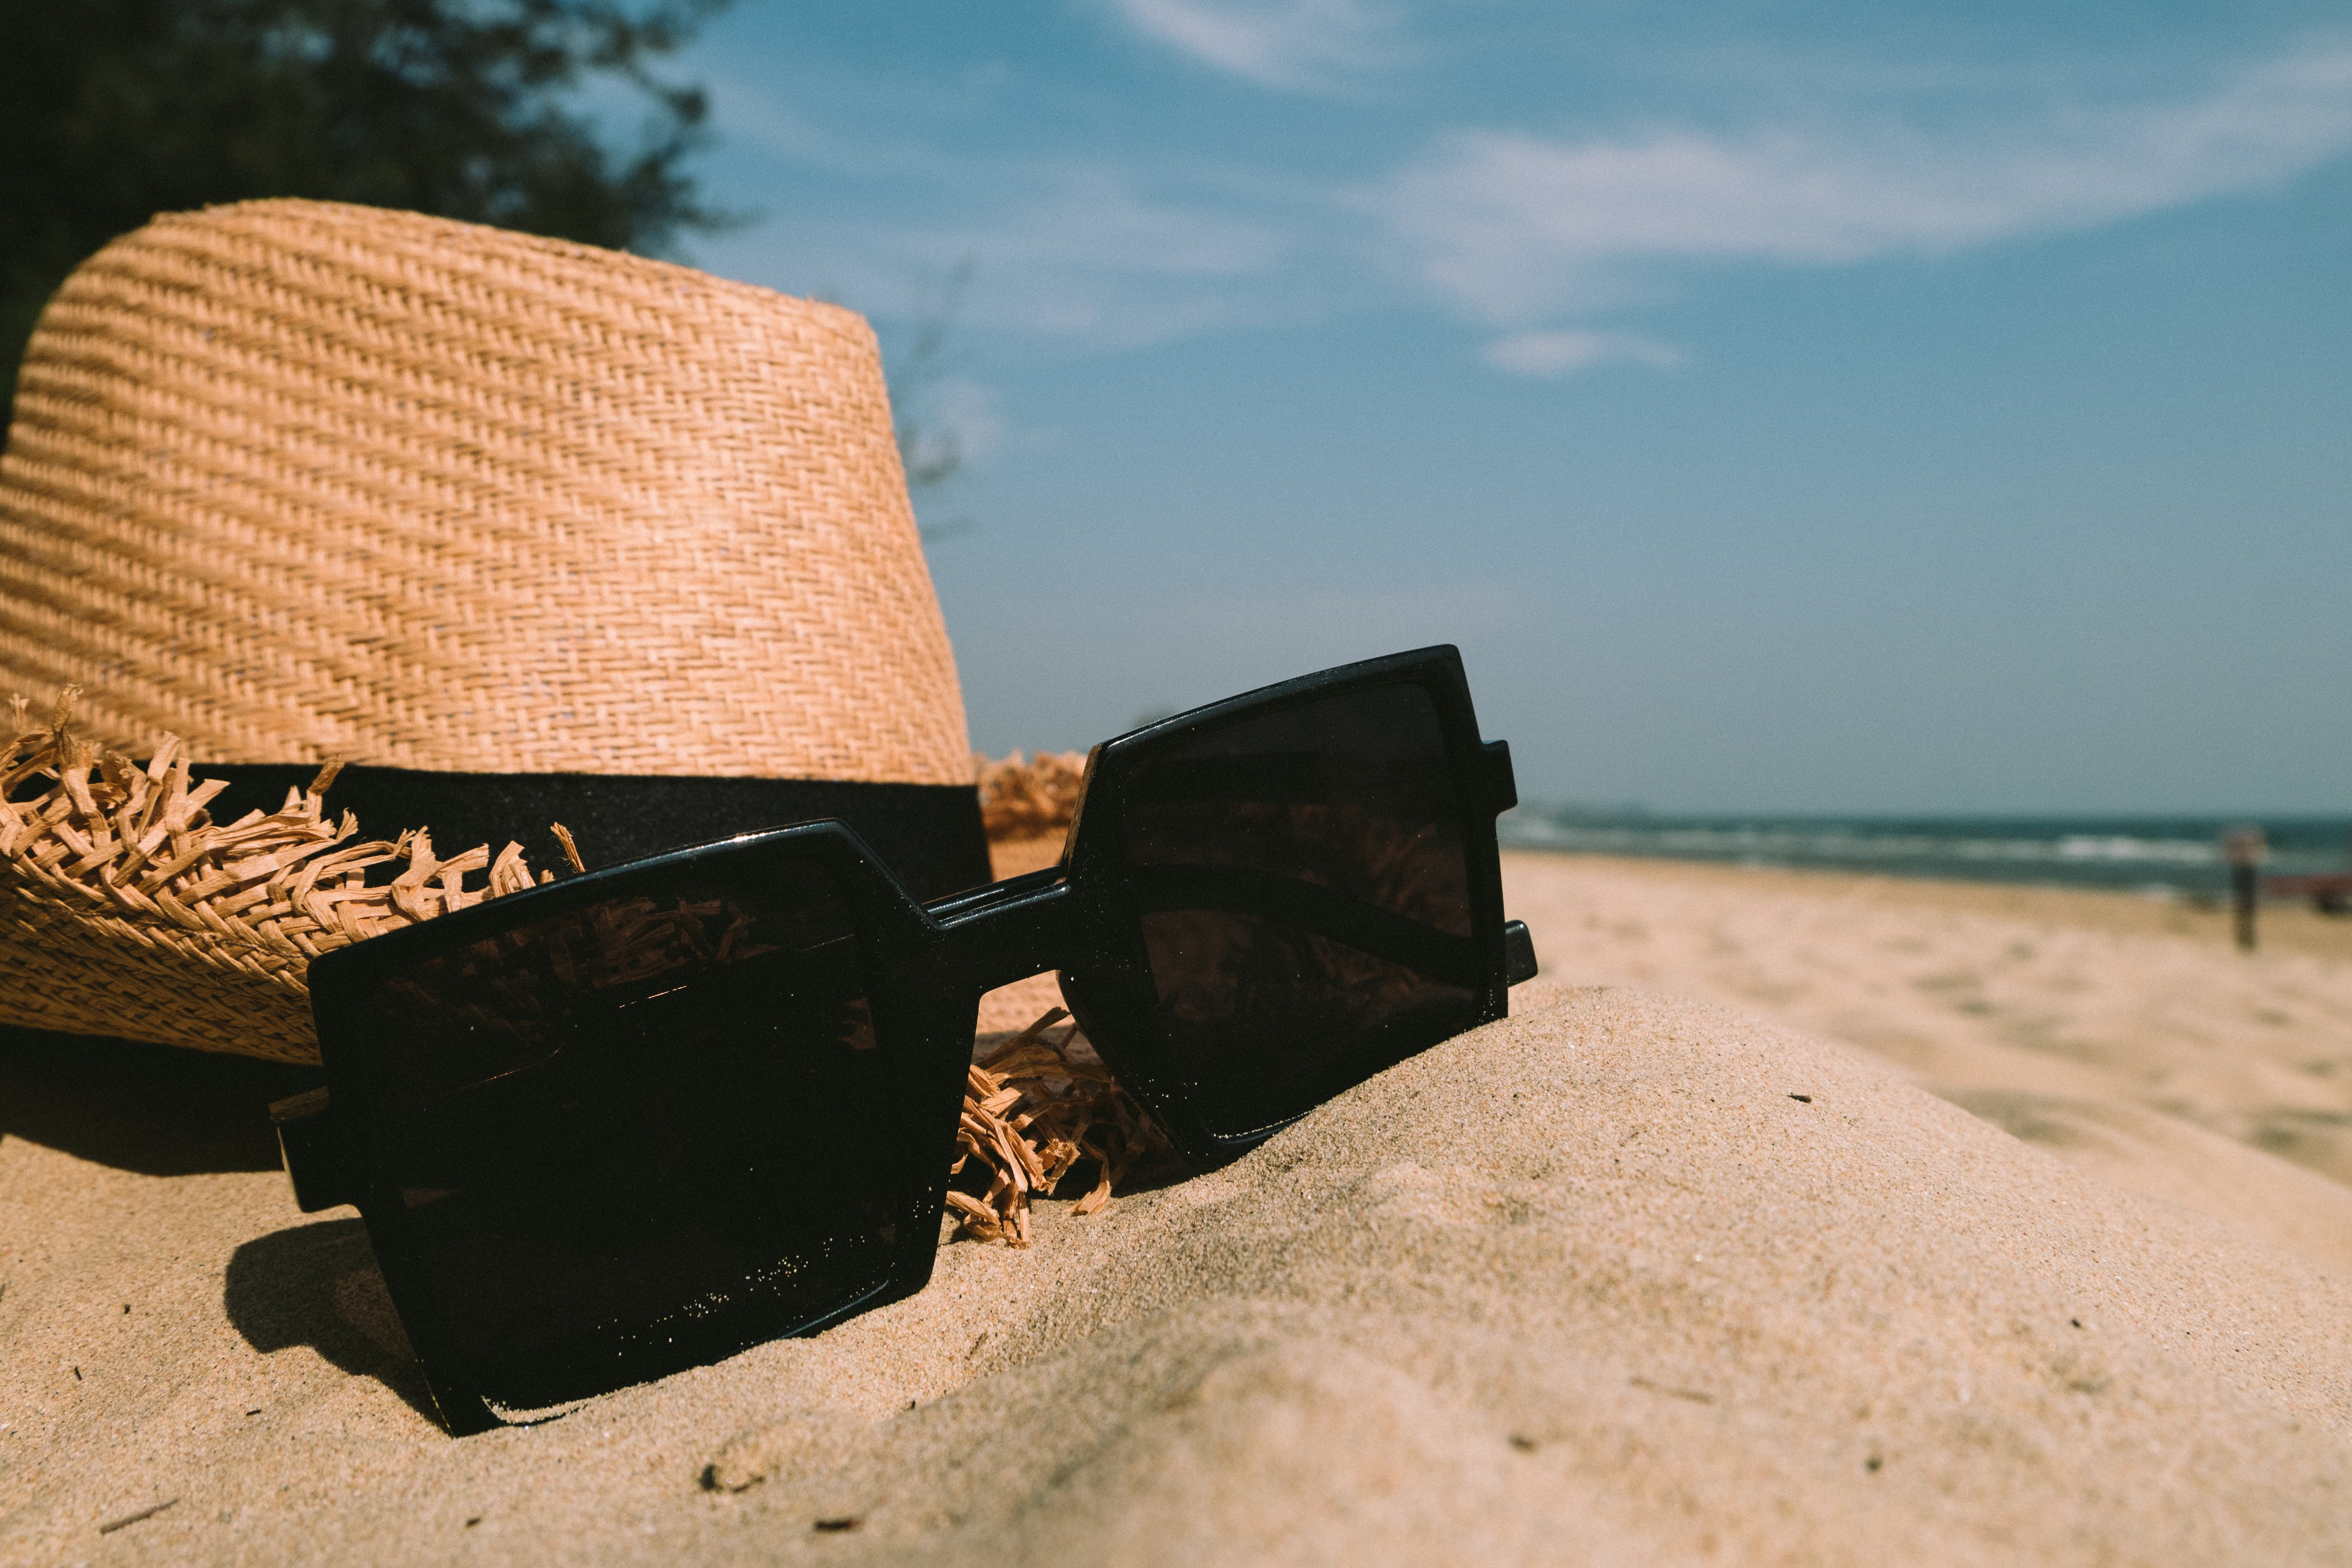 Sunglasses Beside Sun Hat on Sand